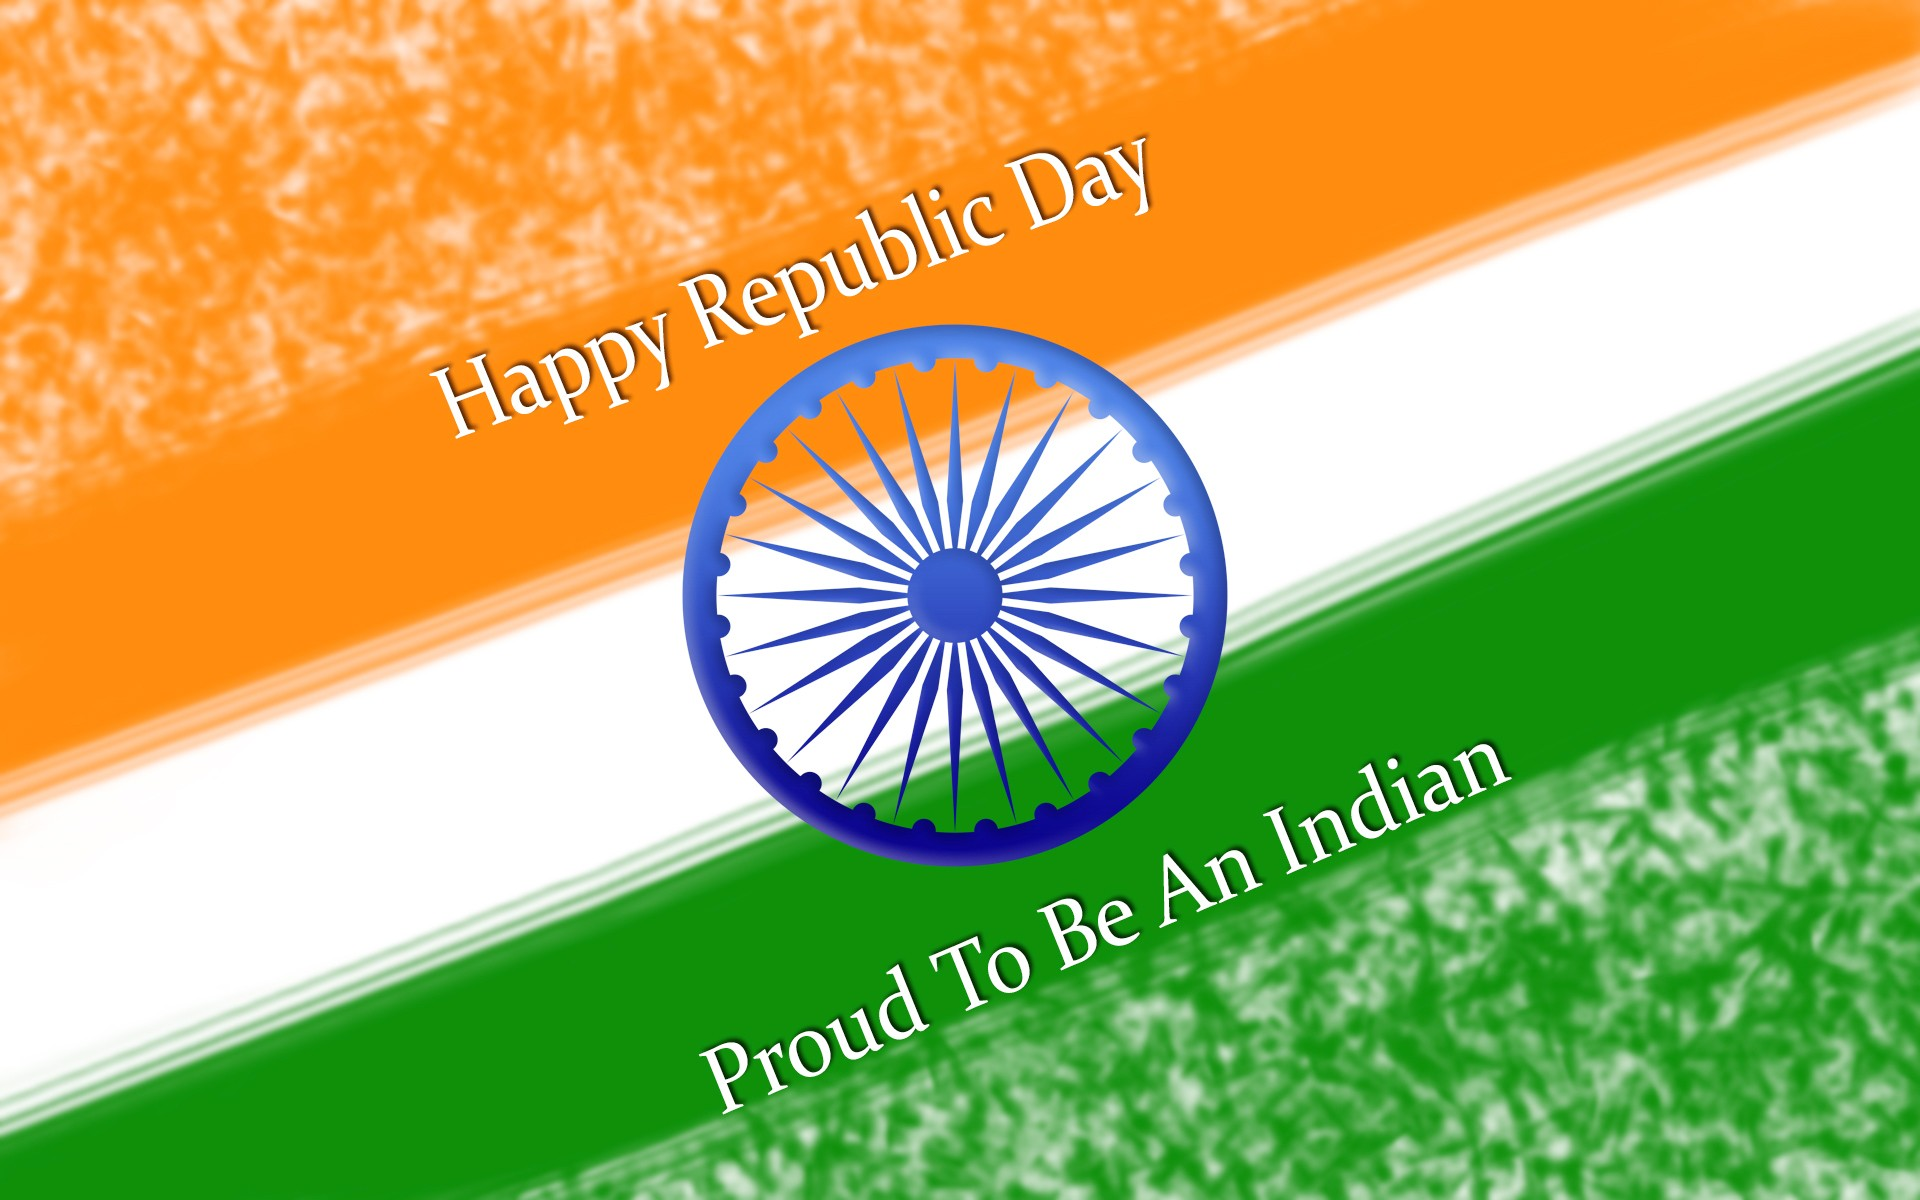 India-Republic-Day-Images-for-Whatsapp-DP-Profile-Wallpapers-Download-6